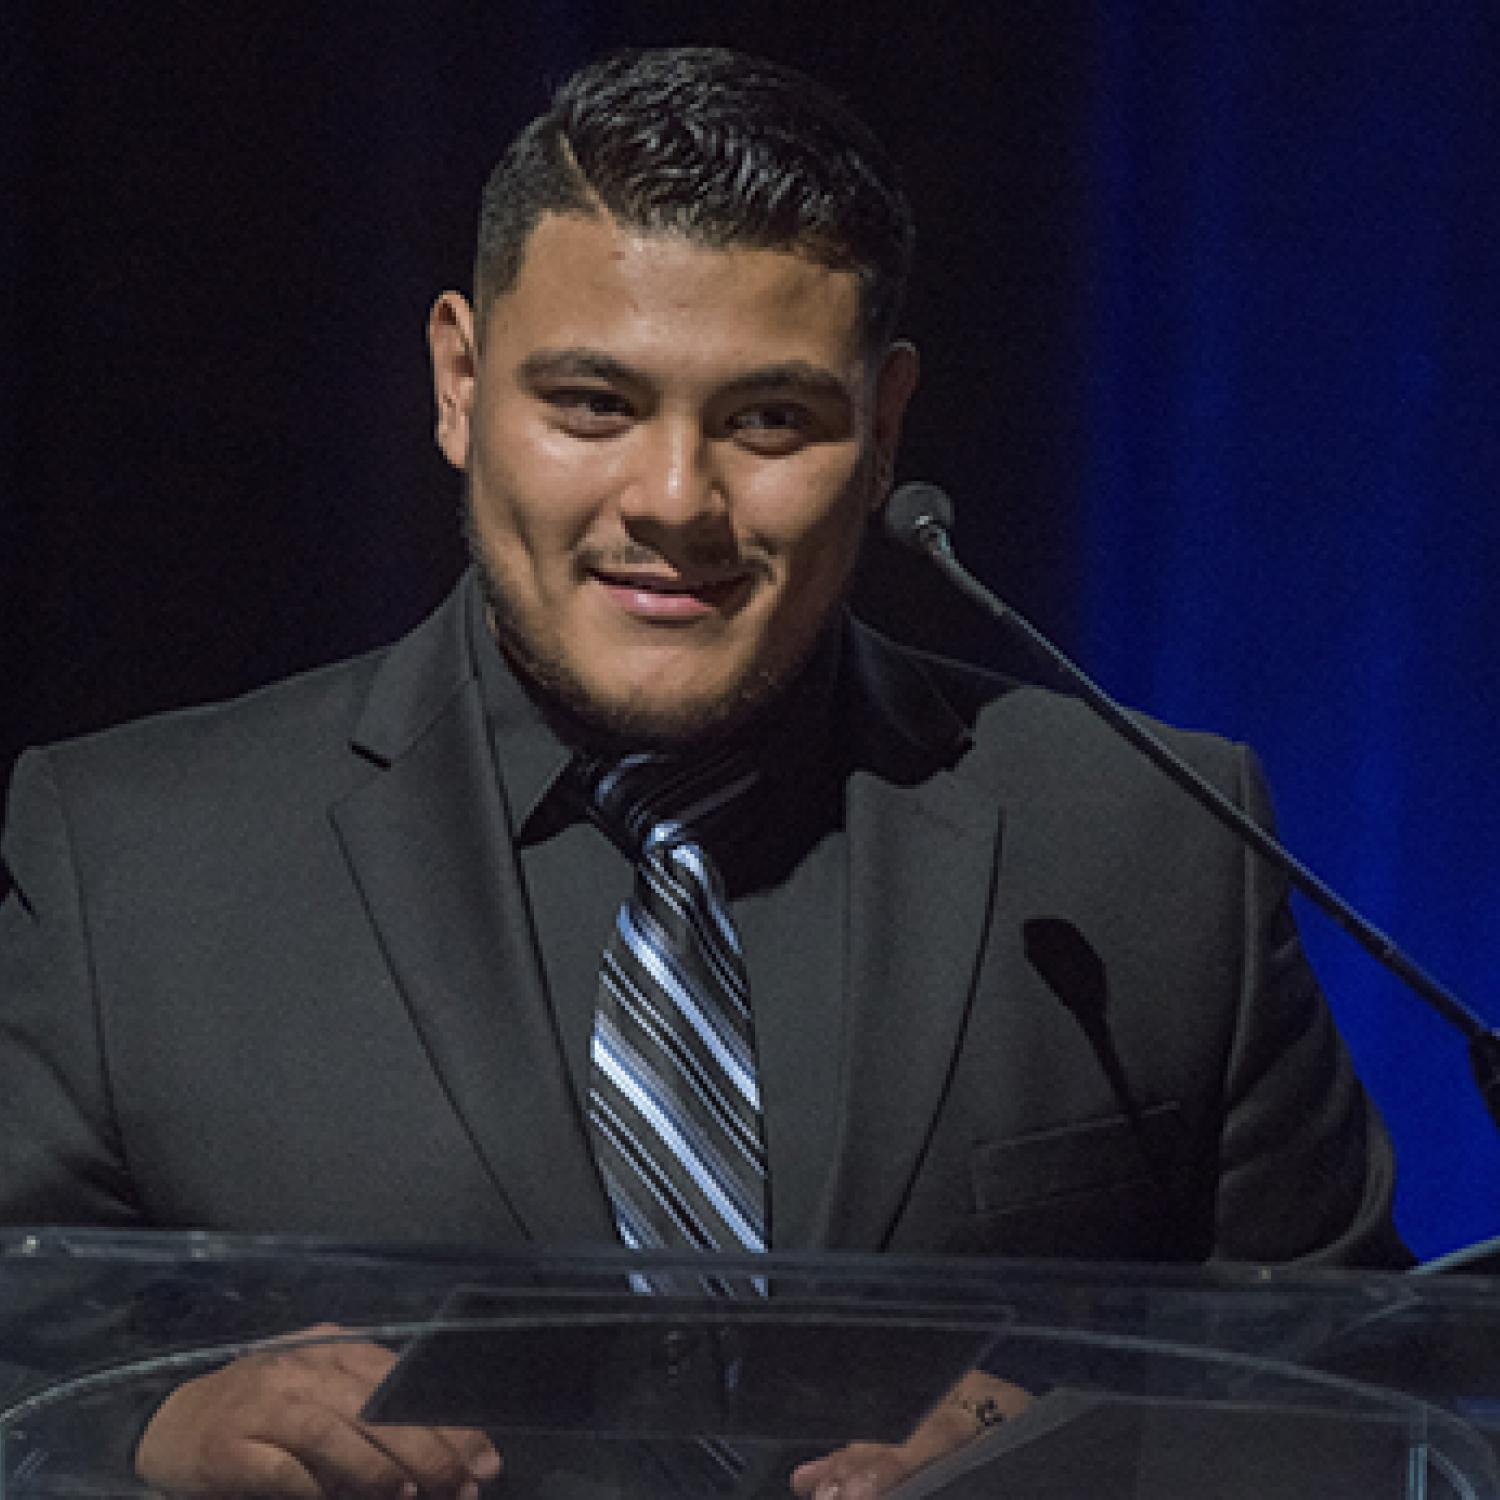 CU Denver junior Daniel Ramirez wows Denver Public Schools Foundation gala with story of how scholarship changed his life